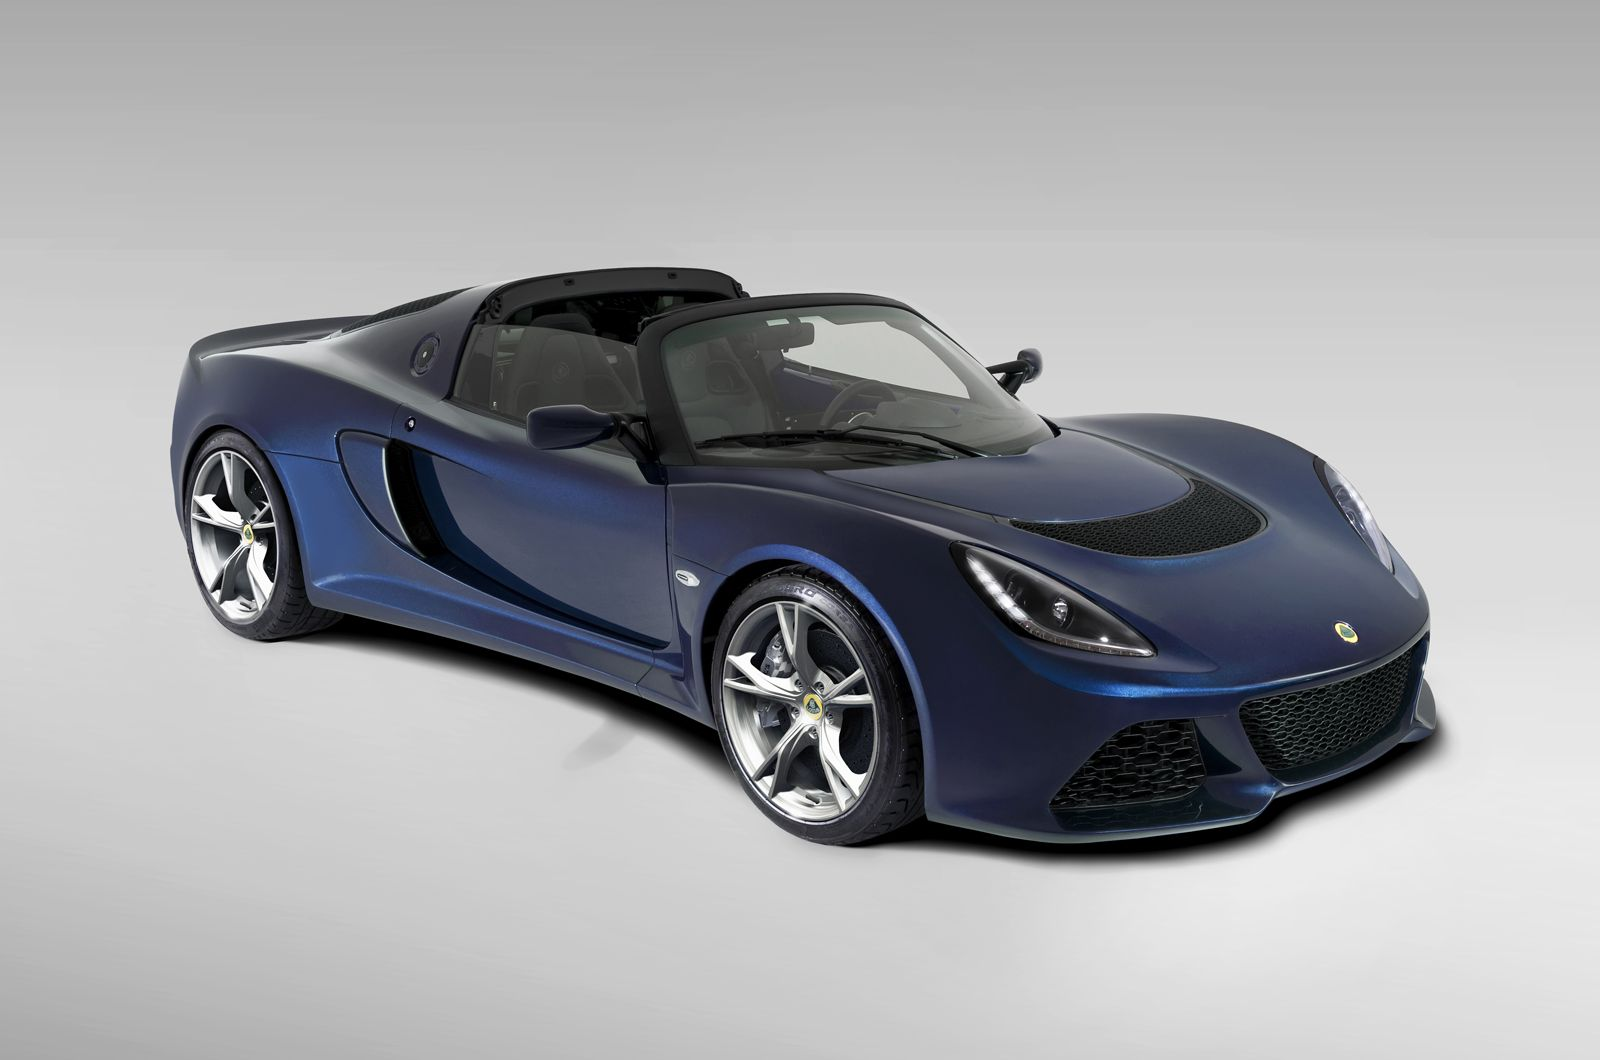 2014 Lotus Exige S Roadster | Vehicles for my Ultimate Garage ...